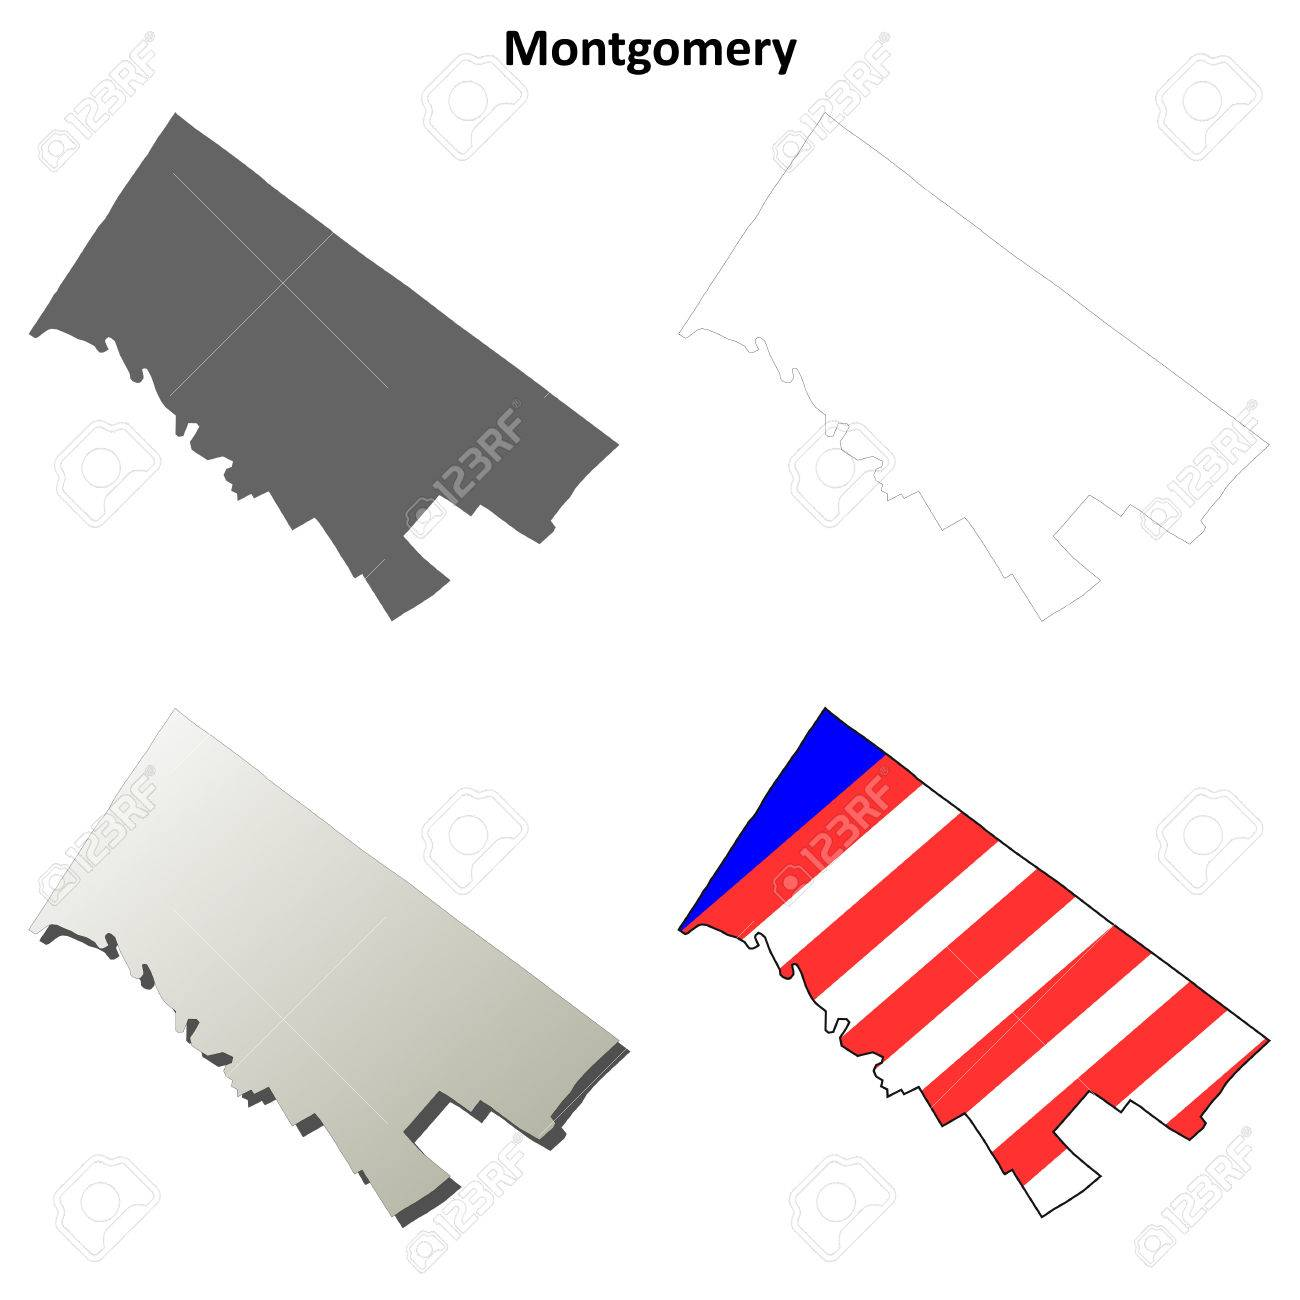 Image of: Montgomery County Pennsylvania Blank Outline Map Set Royalty Free Cliparts Vectors And Stock Illustration Image 56393549